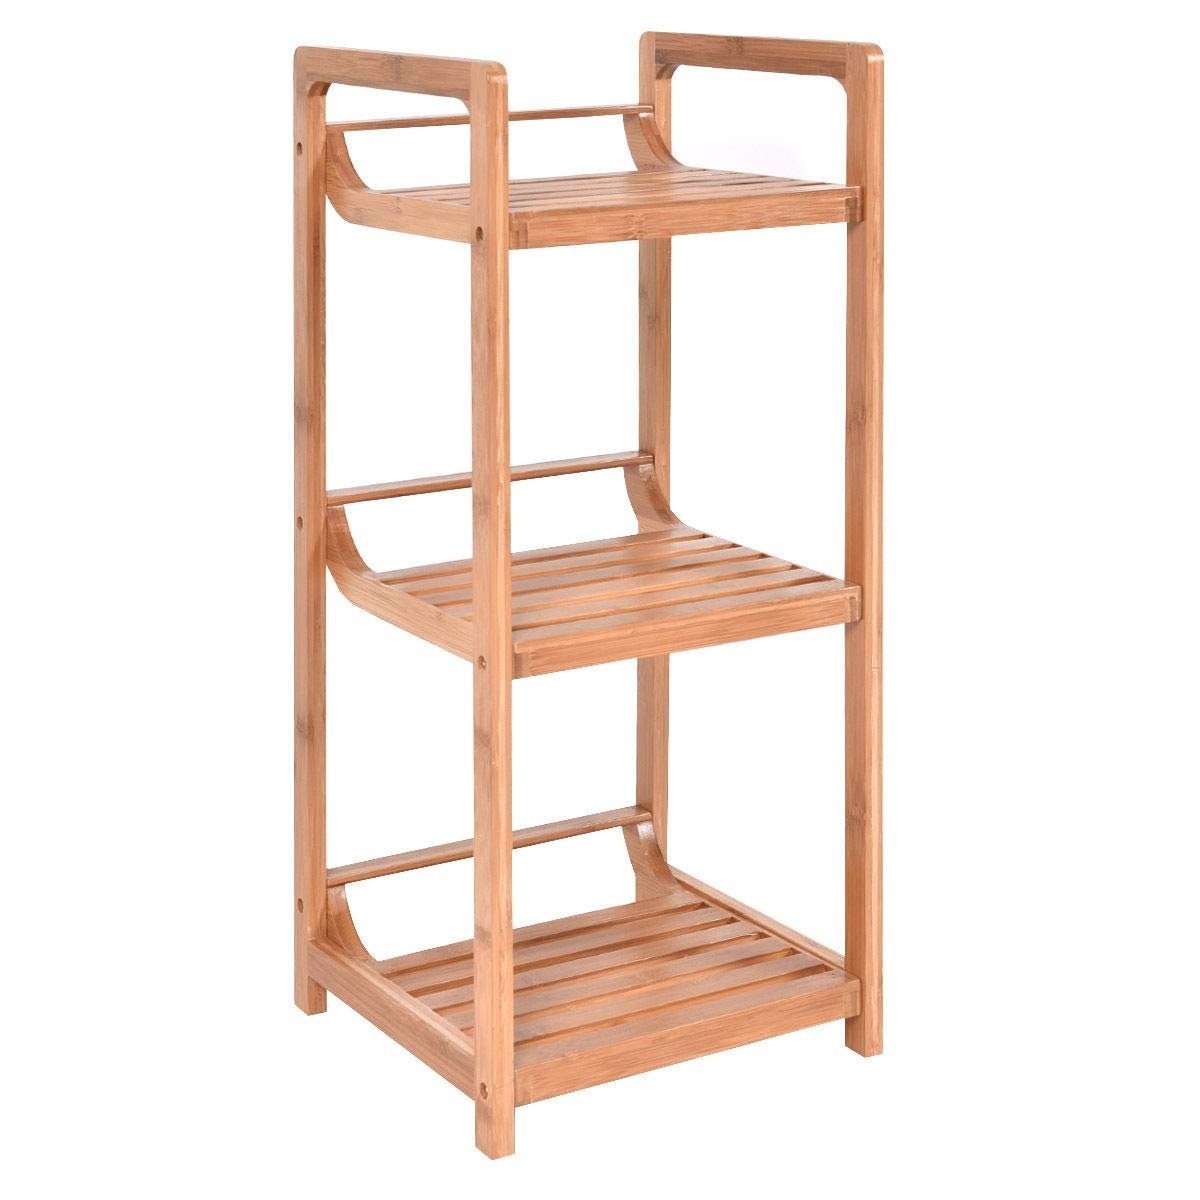 WATERJOY Bathroom Storage Rack 3 Shelf Bamboo Multifunctional Standing Organizer Shelving